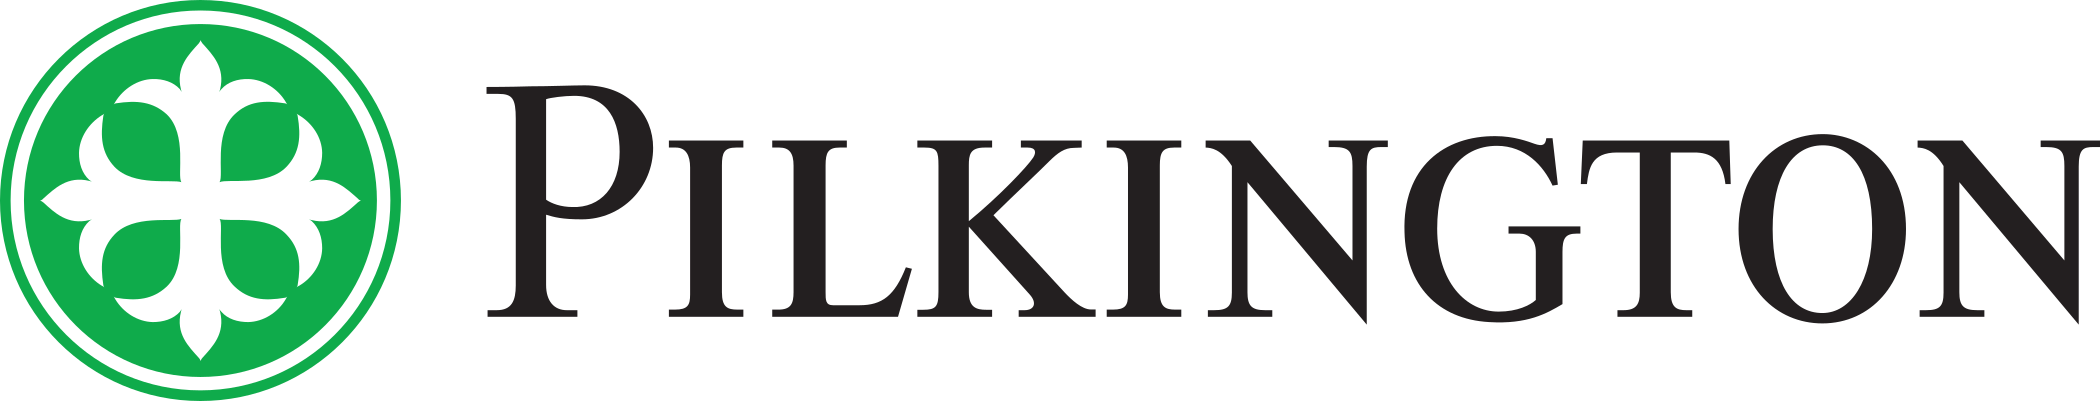 pilkington logo 2 - Pilkington Logo